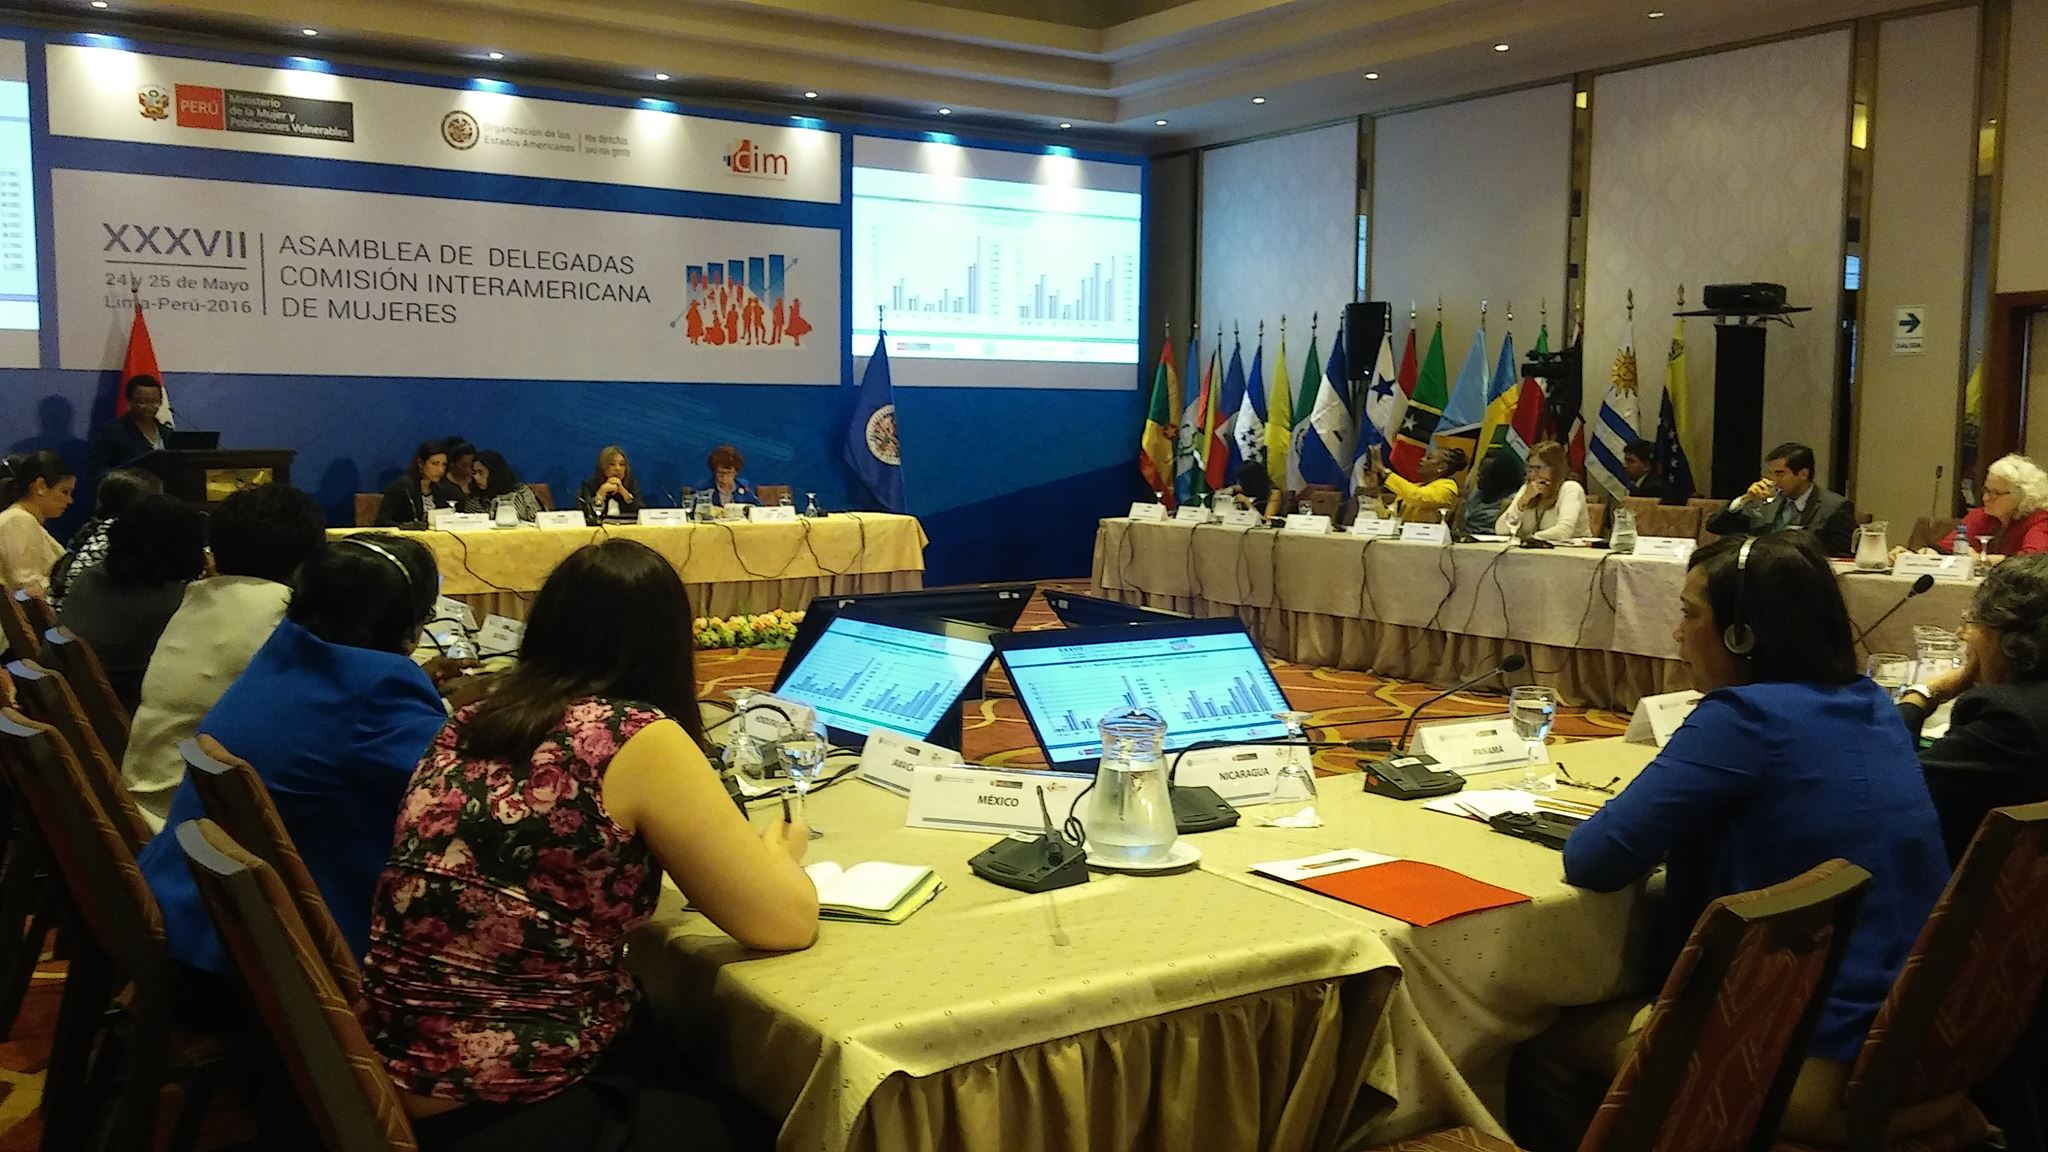 7.-Fav-1-XXXVII-Delegates-Assembly-of-Women-Interamerican-Commission